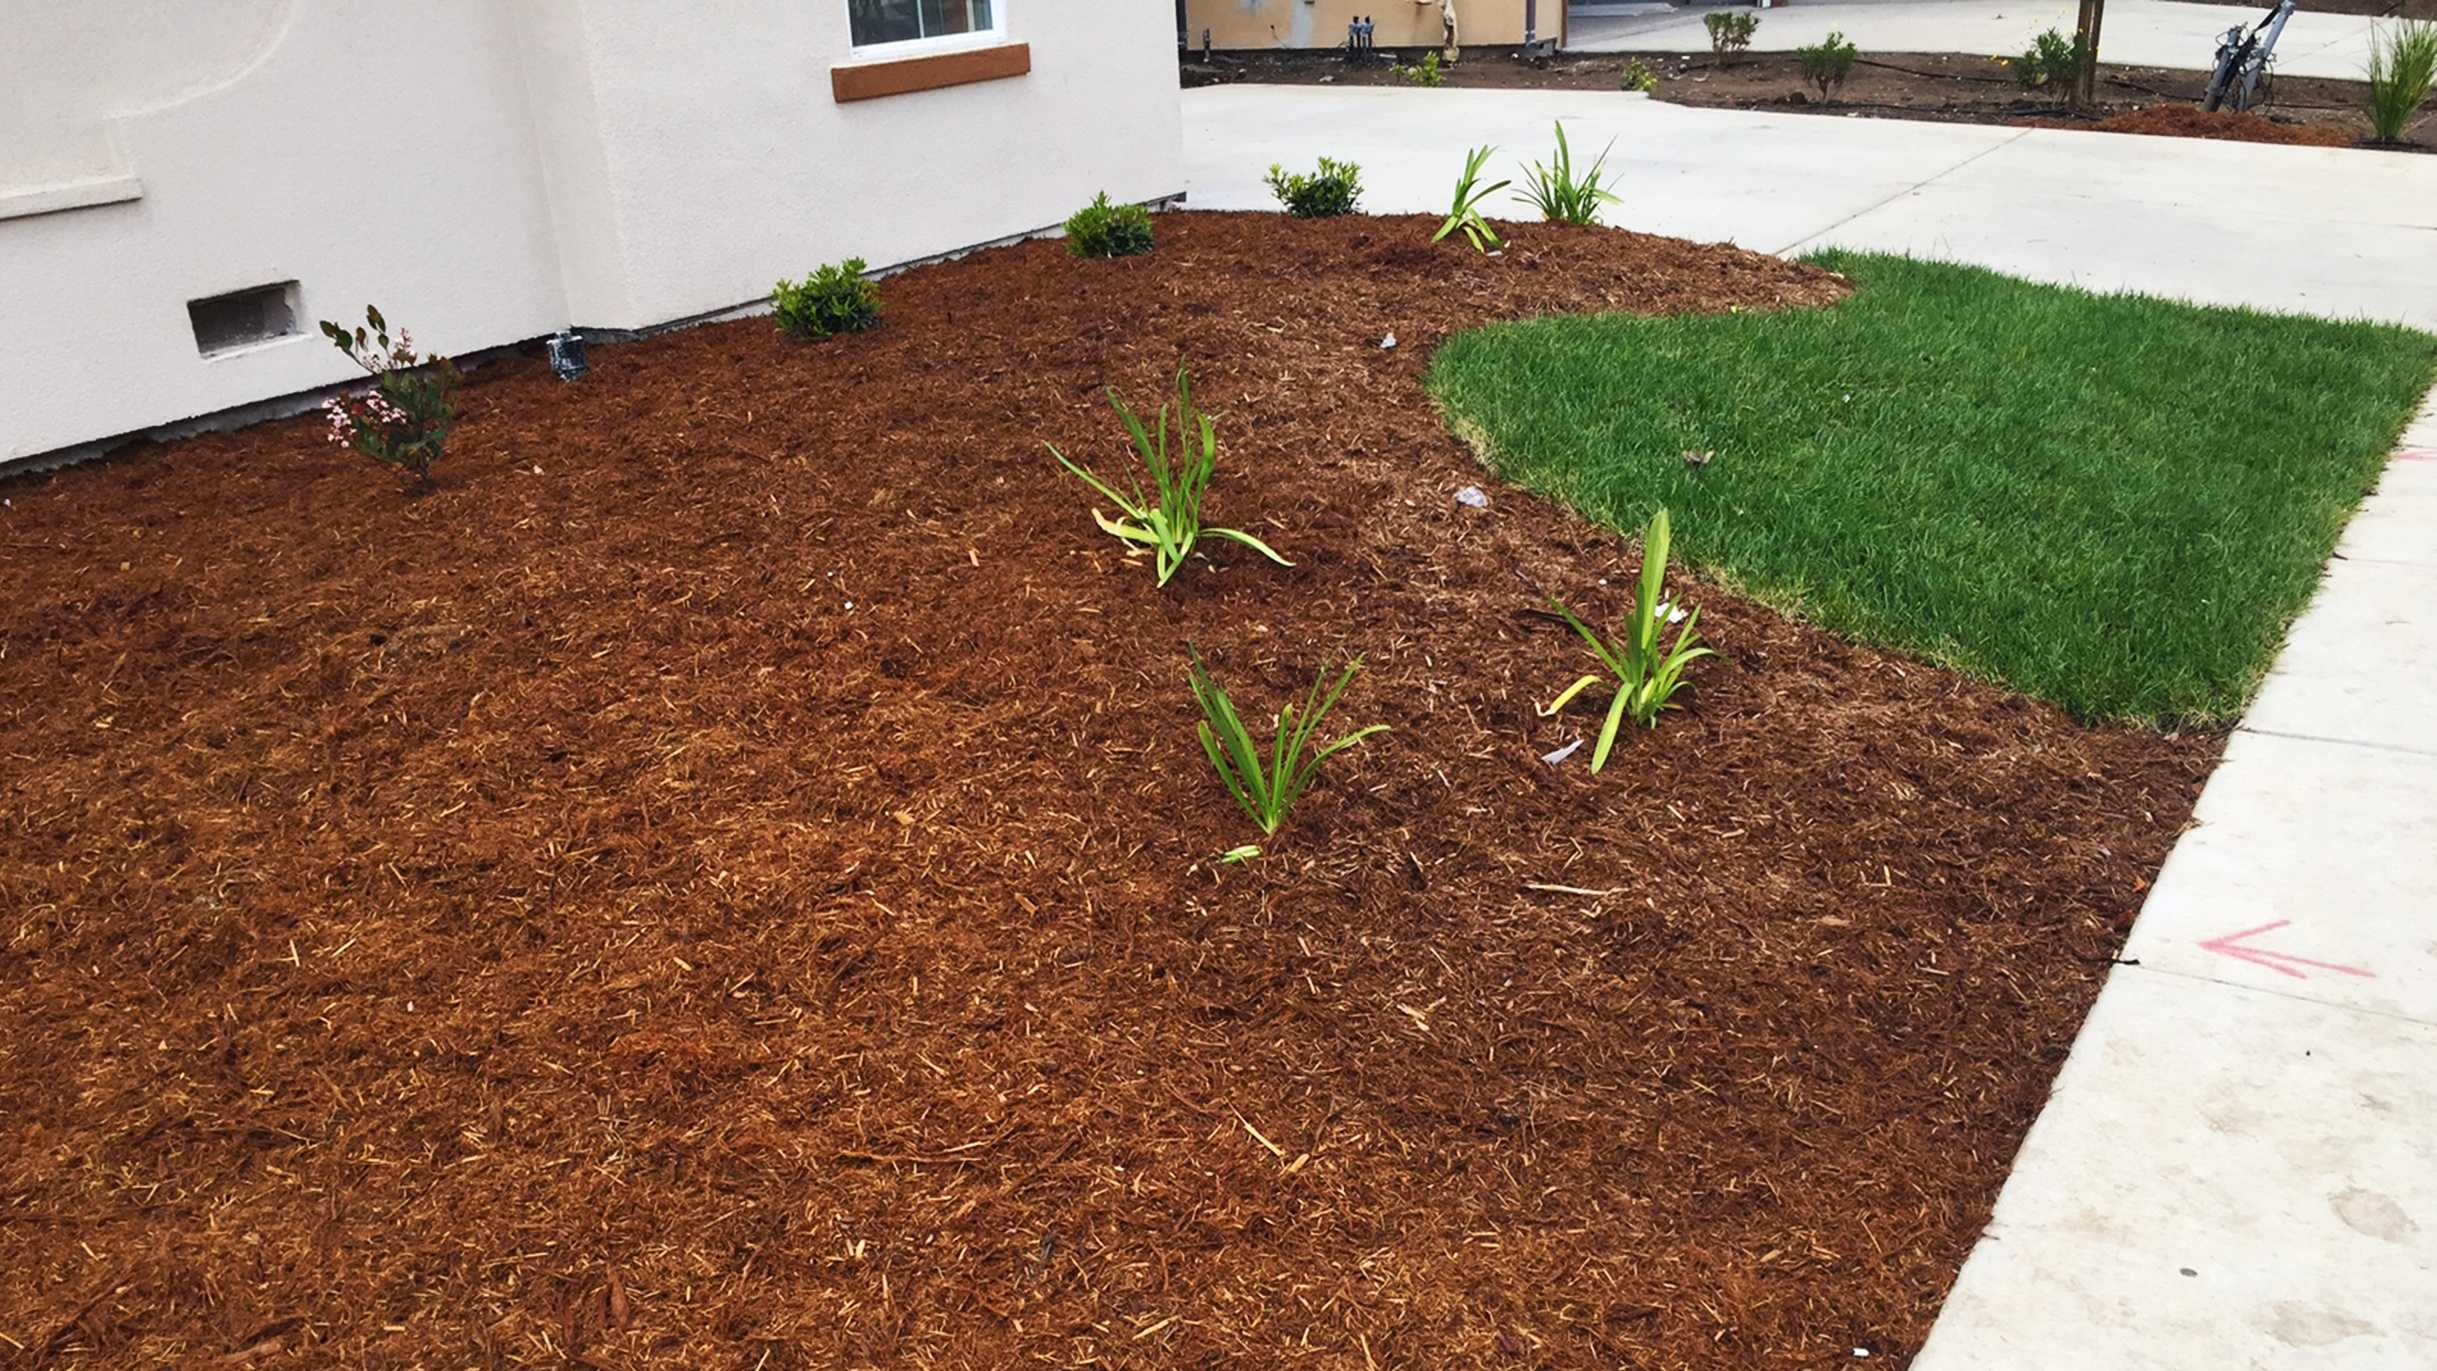 A very little lawn was planted in Salinas.